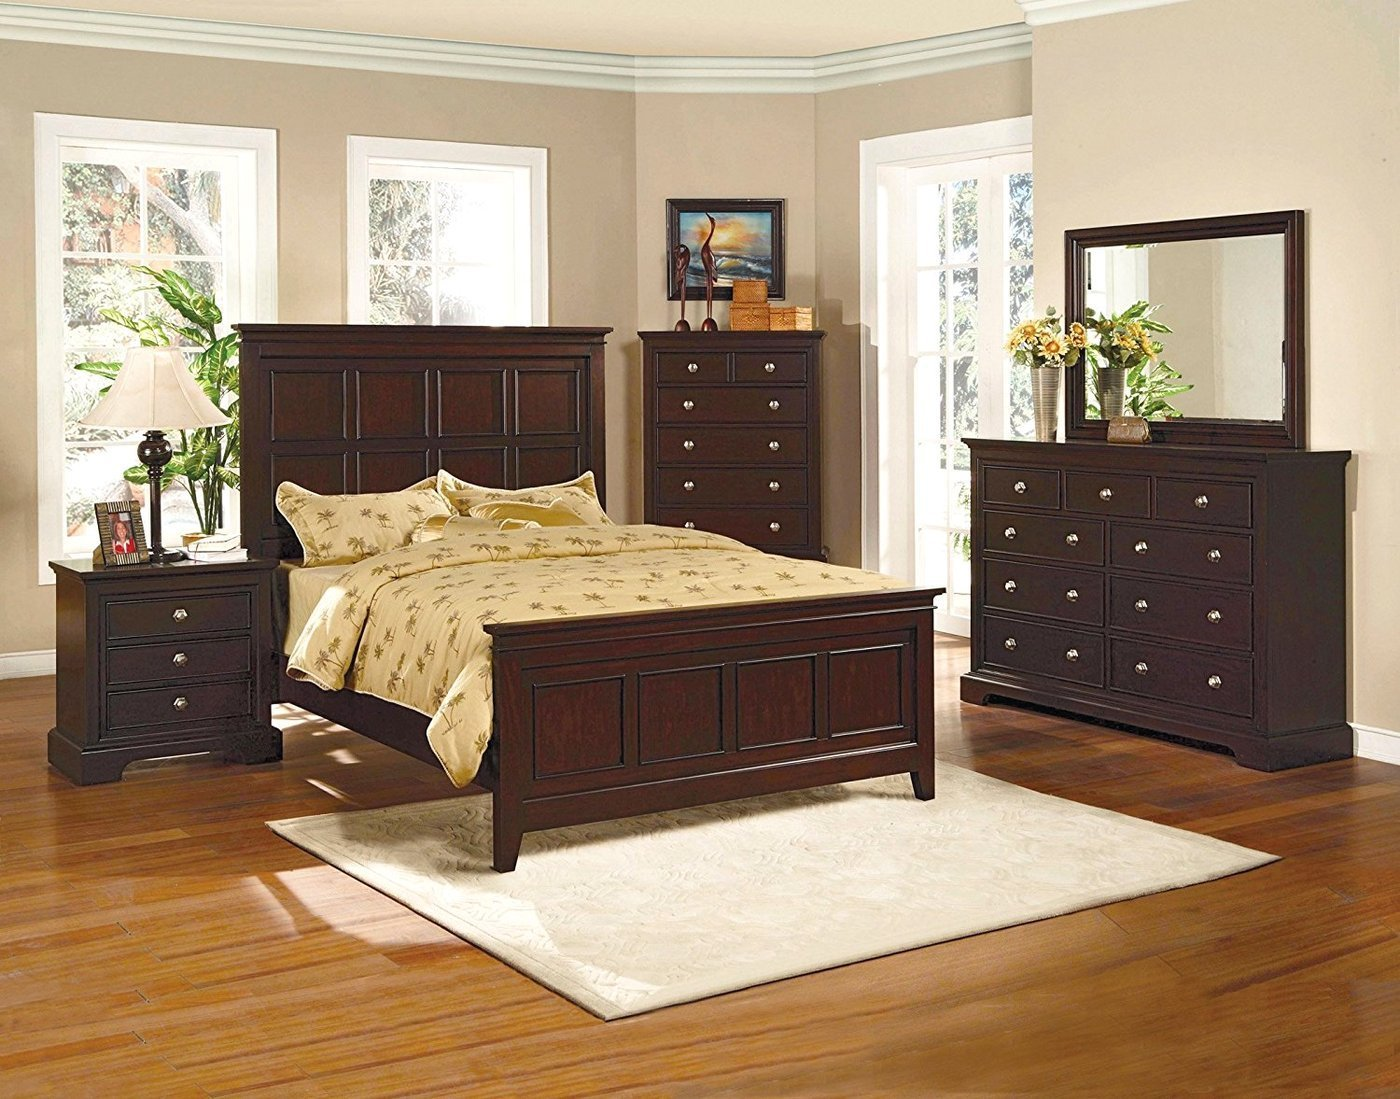 Best London Panel Espresso Finish Bedroom Furniture Set Free Shipping Shopfactorydirect Com With Pictures